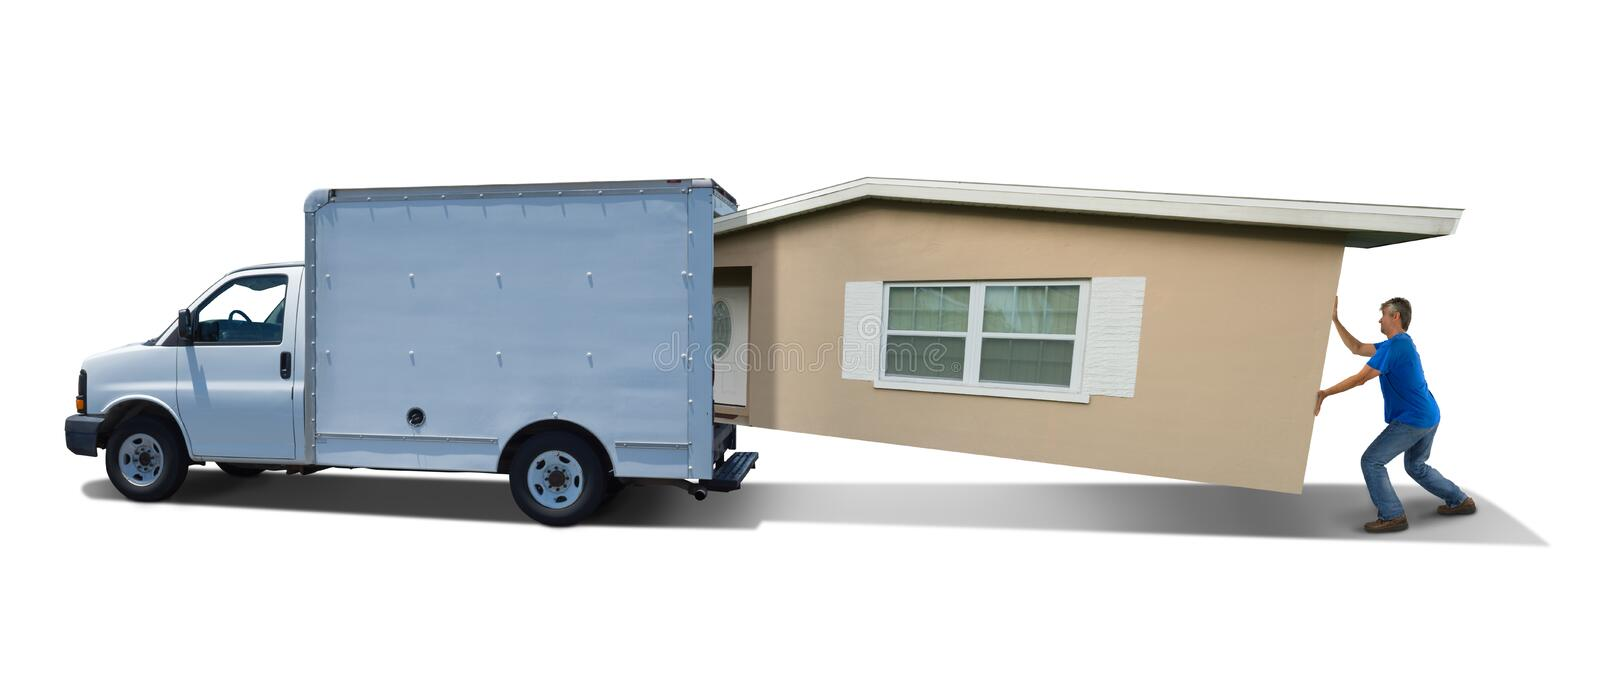 Man struggling cramming home house into moving truck van on moving day royalty free stock photo